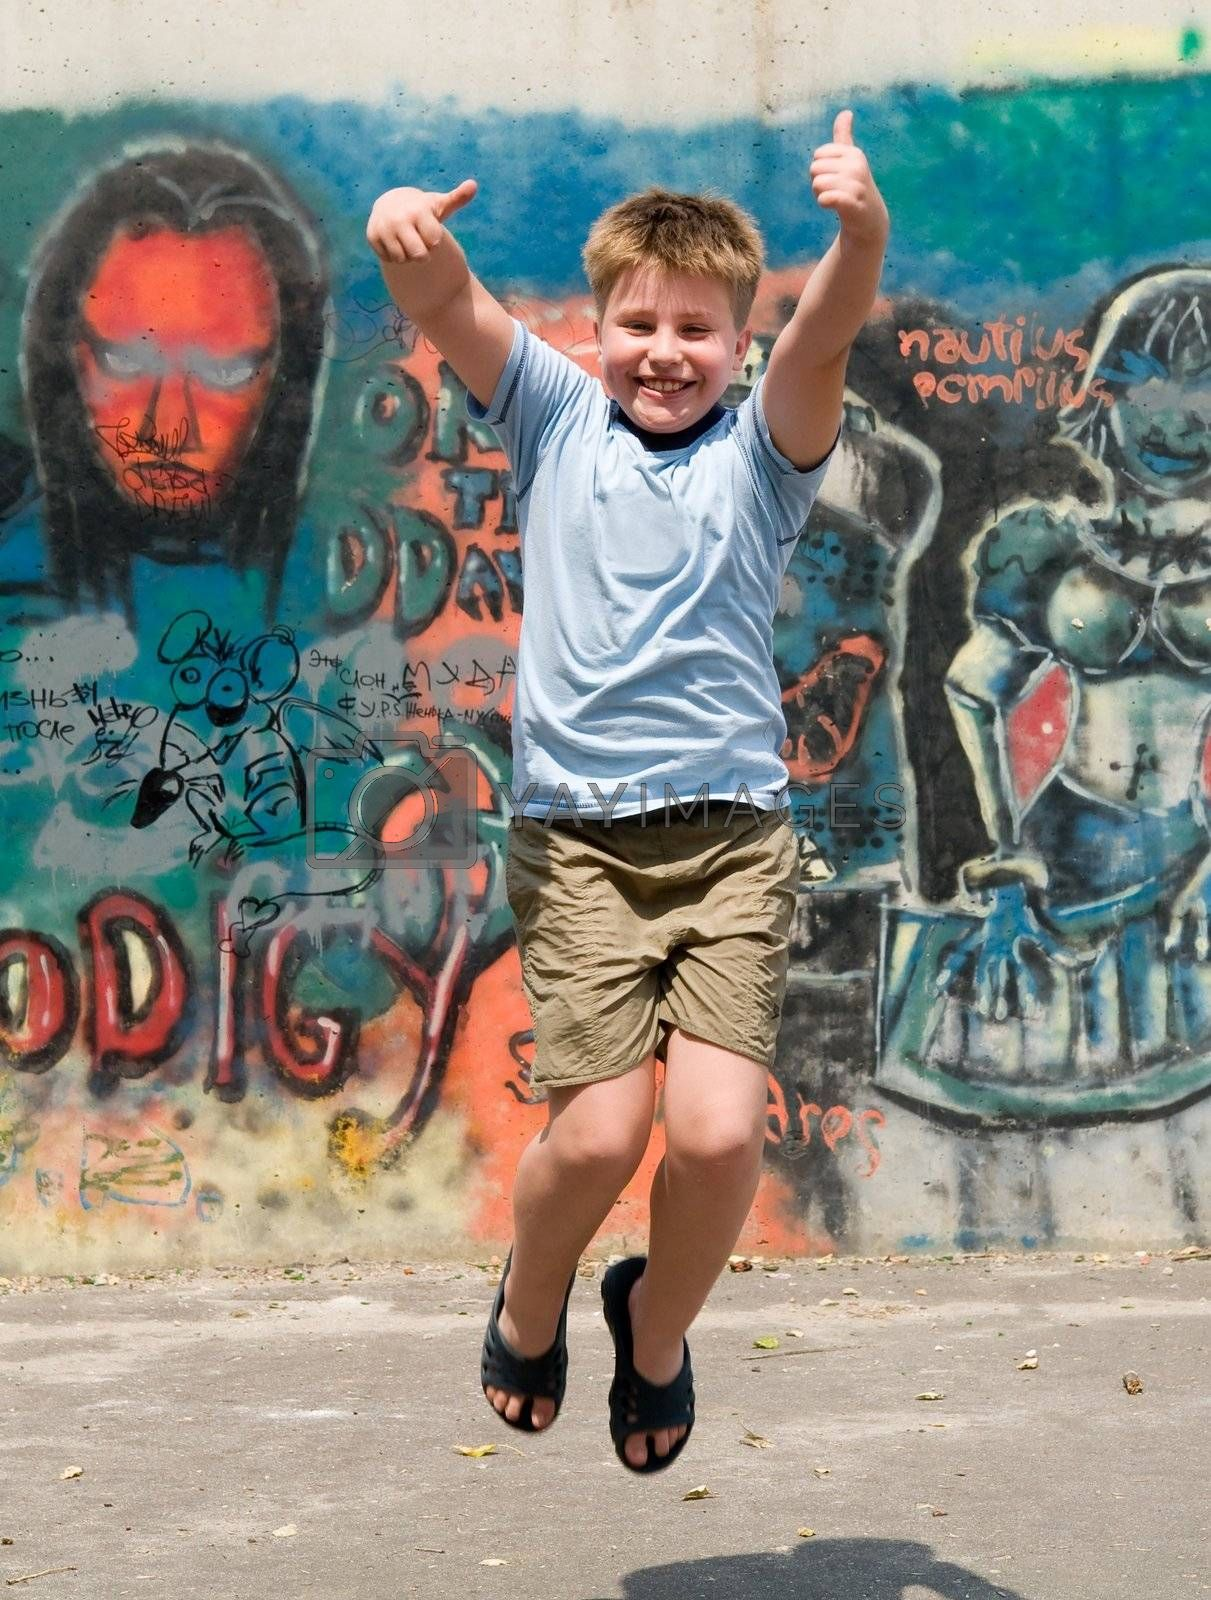 The jumping child with graffiti at background